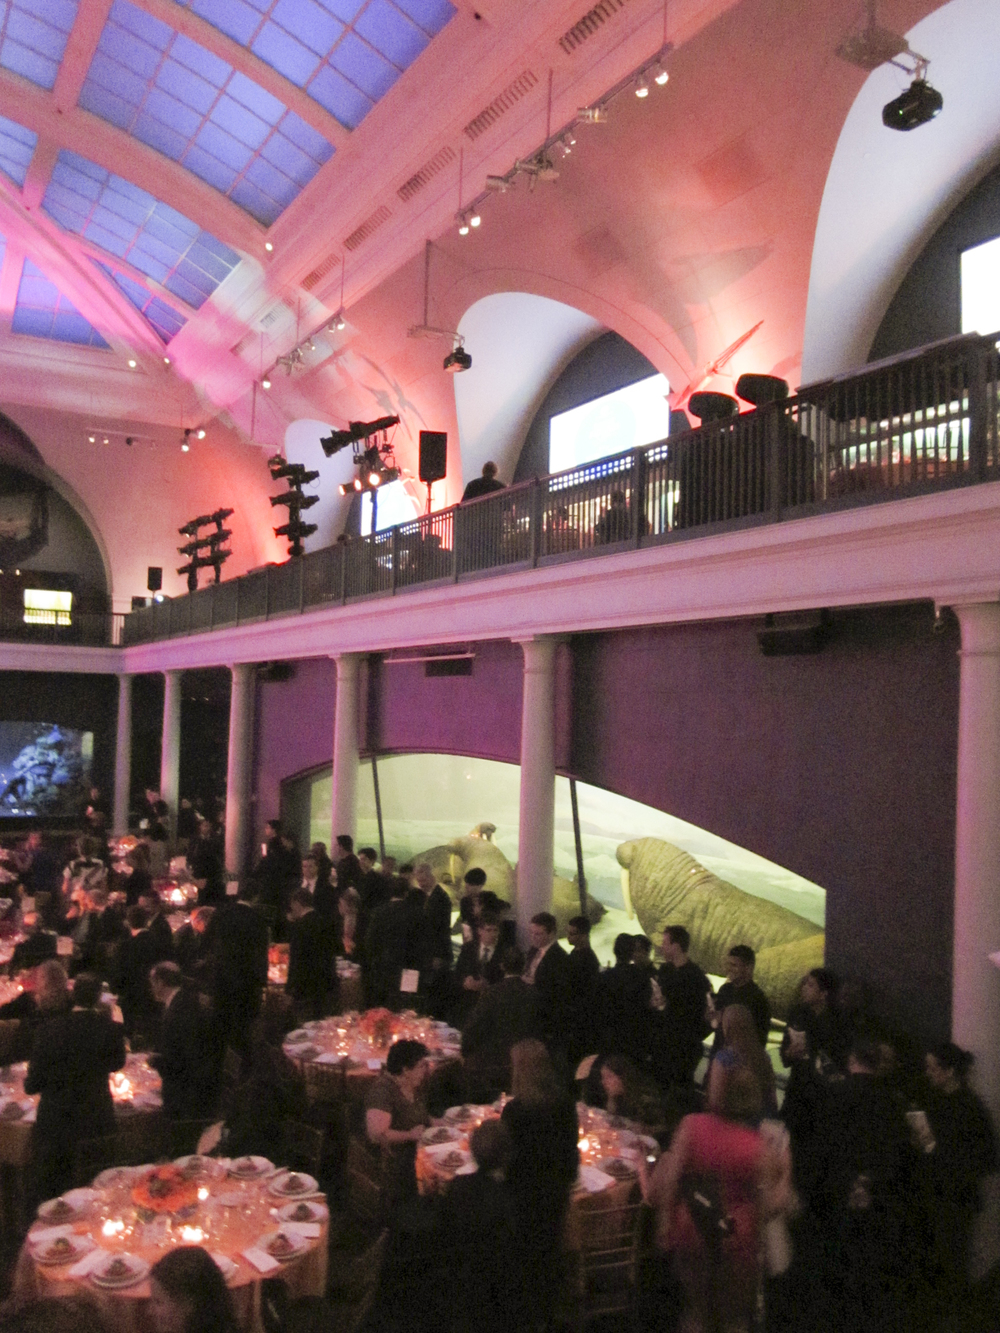 ceci-new-york-gives-back-boys-and-girls-club-of-america-great-futures-gala-2011-invitations-party-decor-museum-of-natural-history-event-space-venue-8.jpg